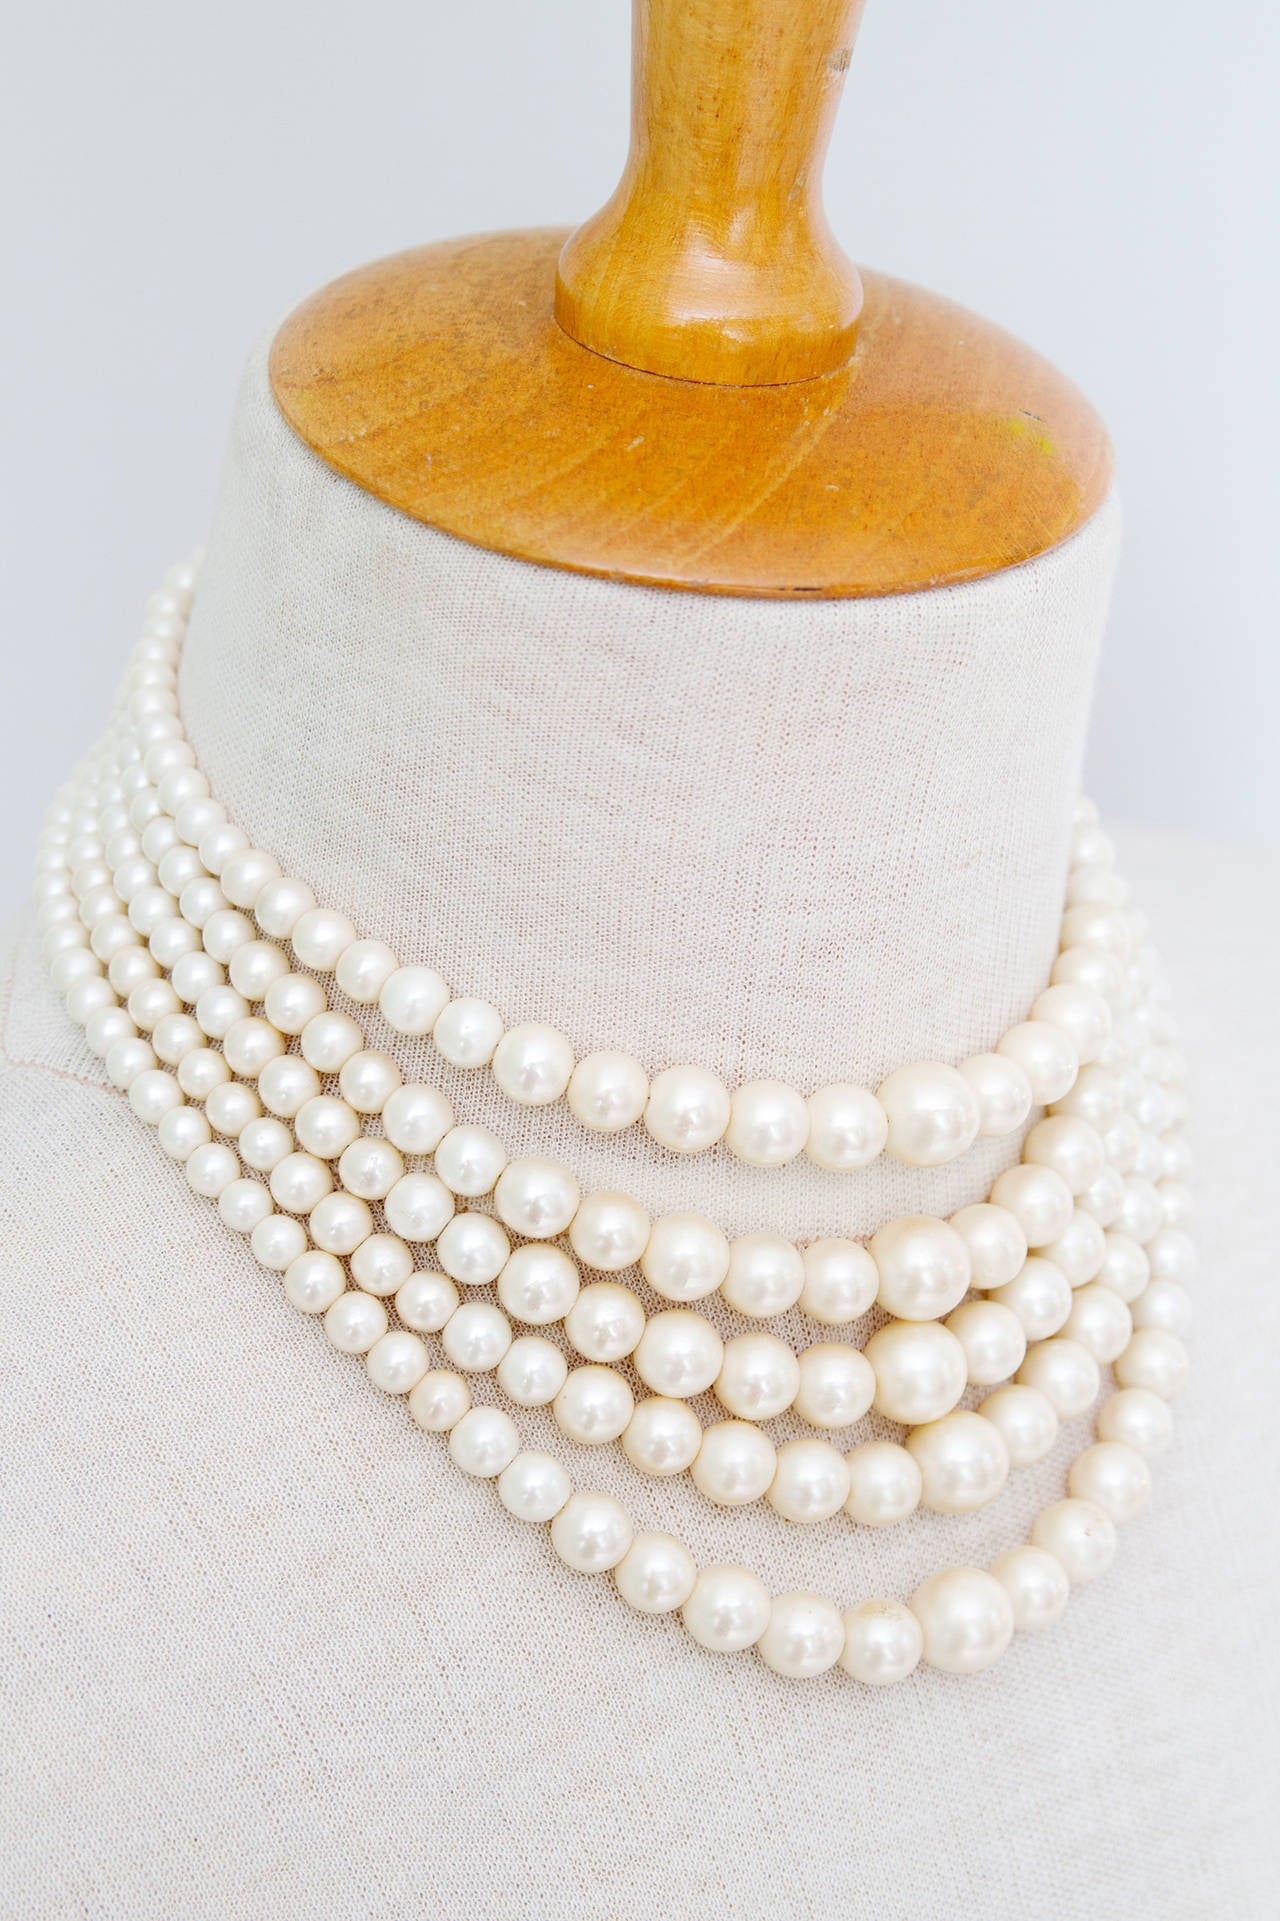 A 1960s Christian Dior five strand pearl chocker with silver hardware. The size of the pearls range from 0.5 cm to 1.2 cm in diameter.  The necklace is stamped: Christian Dior 1961.